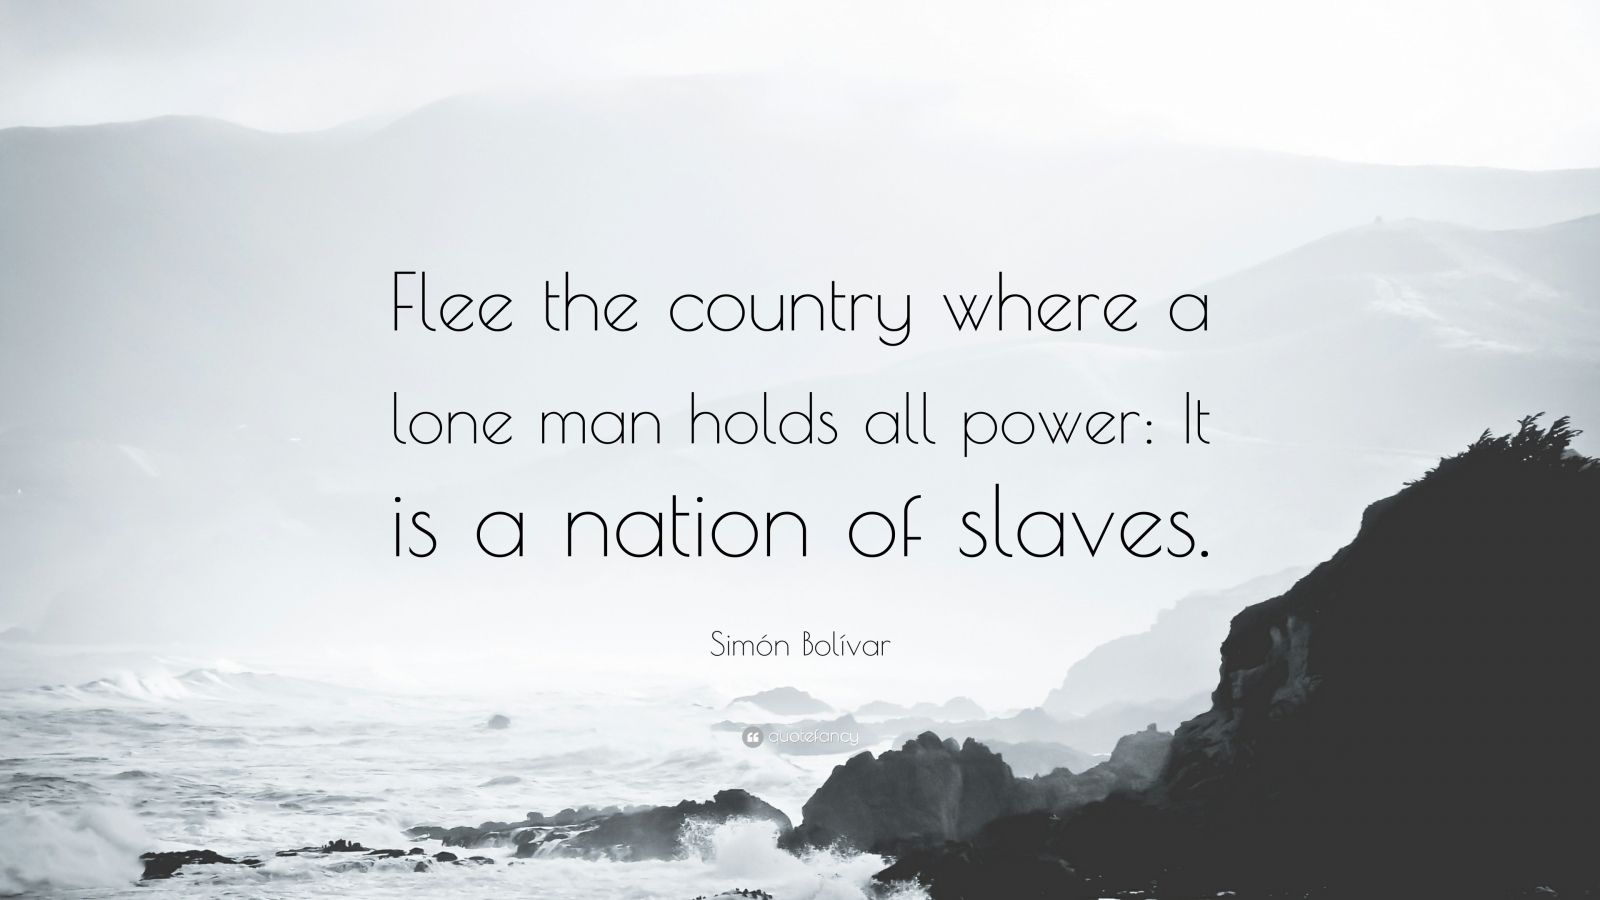 """Simón Bolívar Quote: """"Flee the country where a lone man holds all power: It is a nation of slaves."""""""